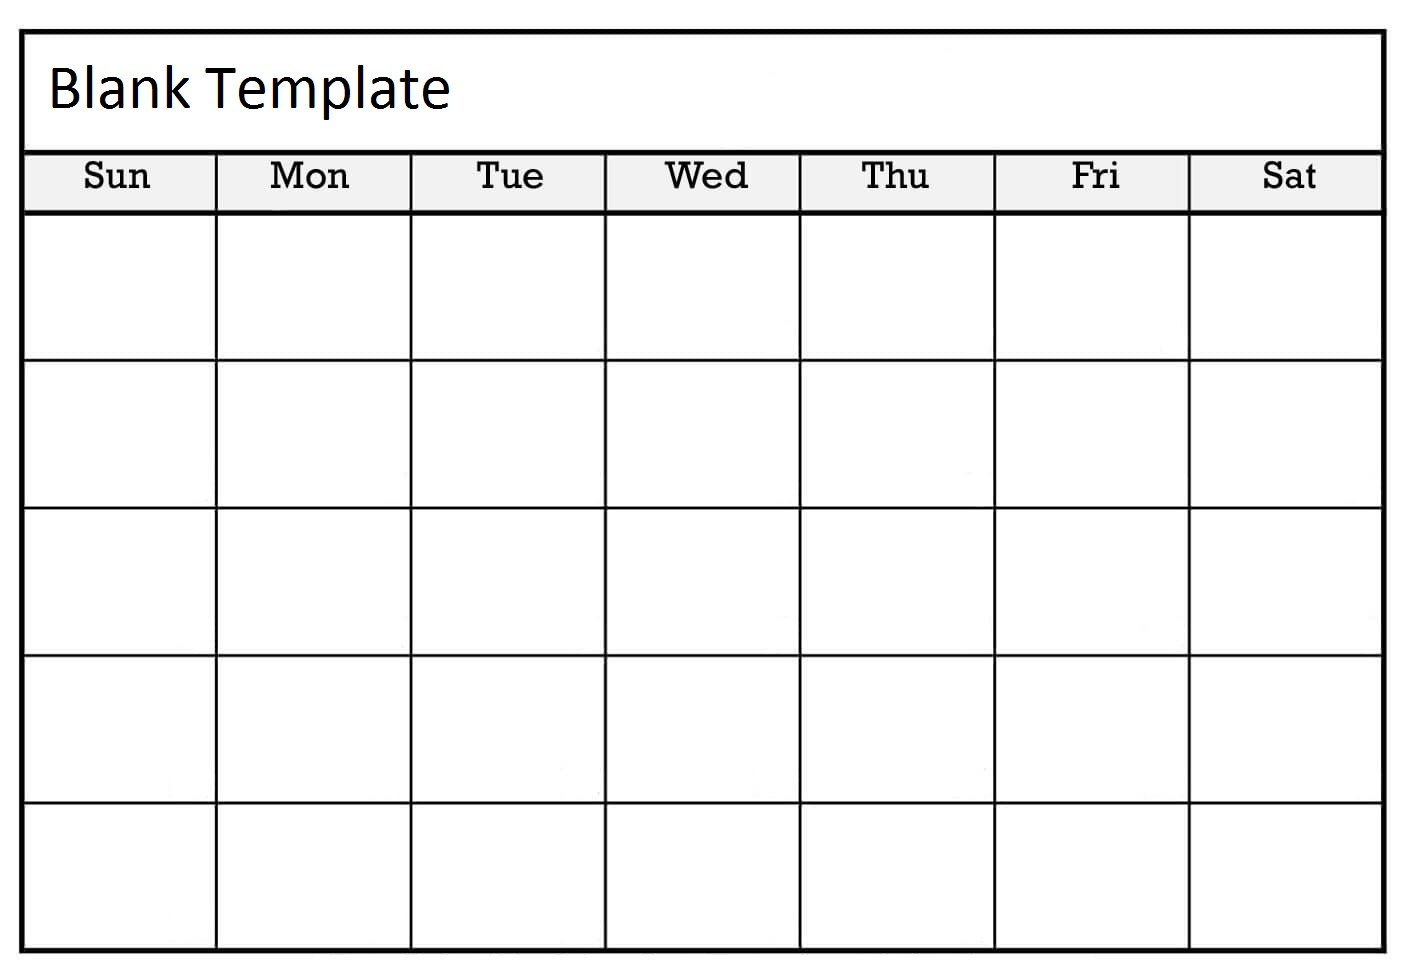 007 Template Ideas Free Monthly Calendar Unforgettable Blank pertaining to Blank Monthly Calender